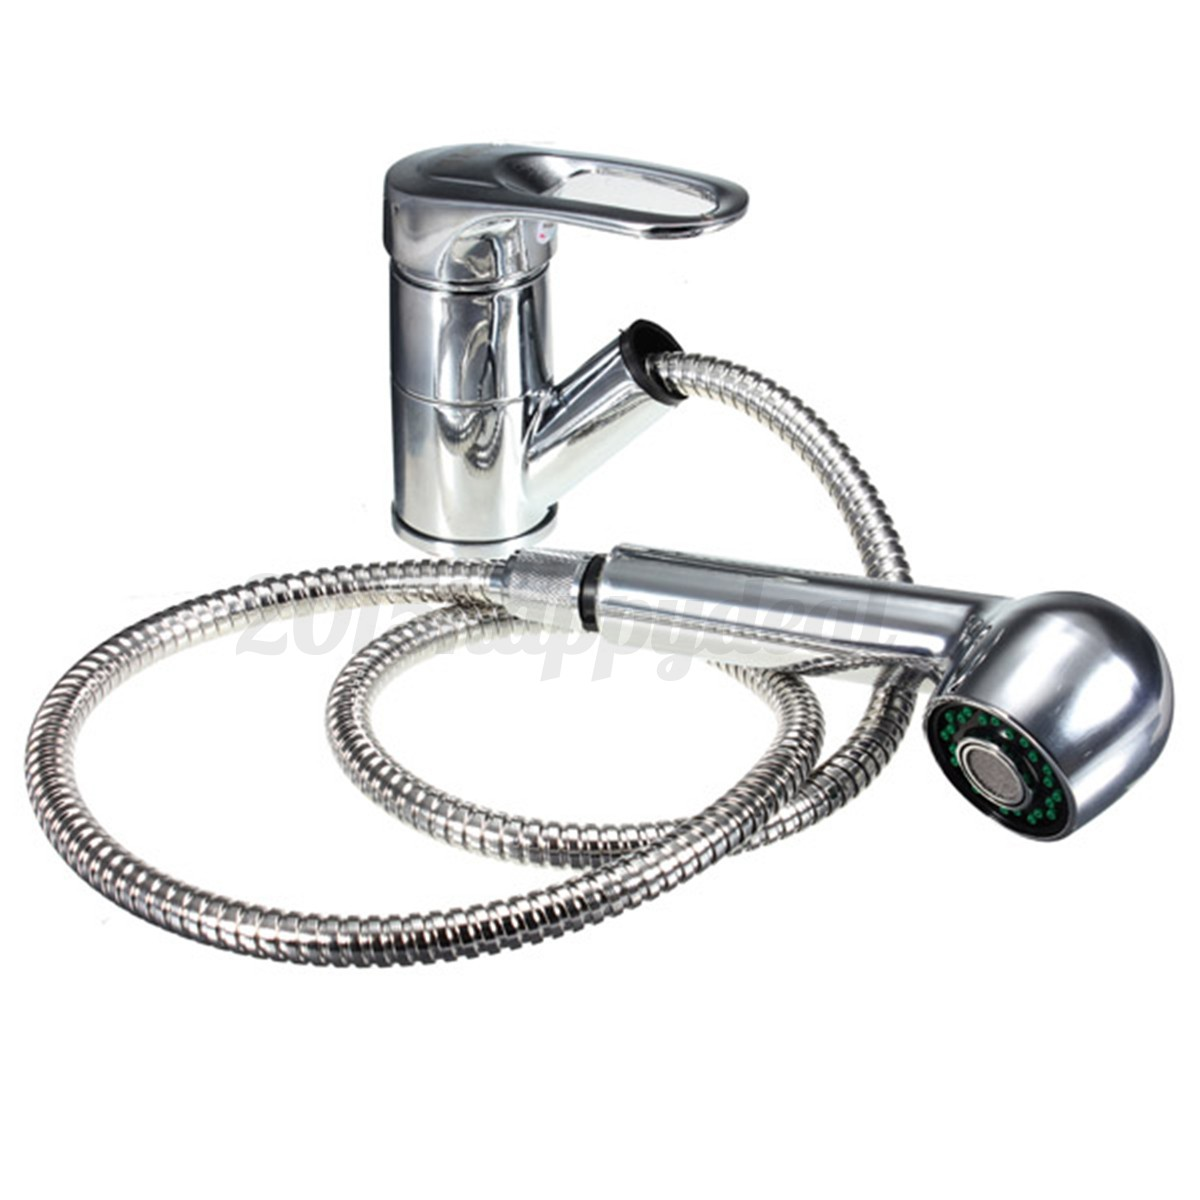 Bathroom sink faucet one hole double handle basin mixer tap ebay - Tapcet Sink Lever Mixer Tap Kitchen Pull Out